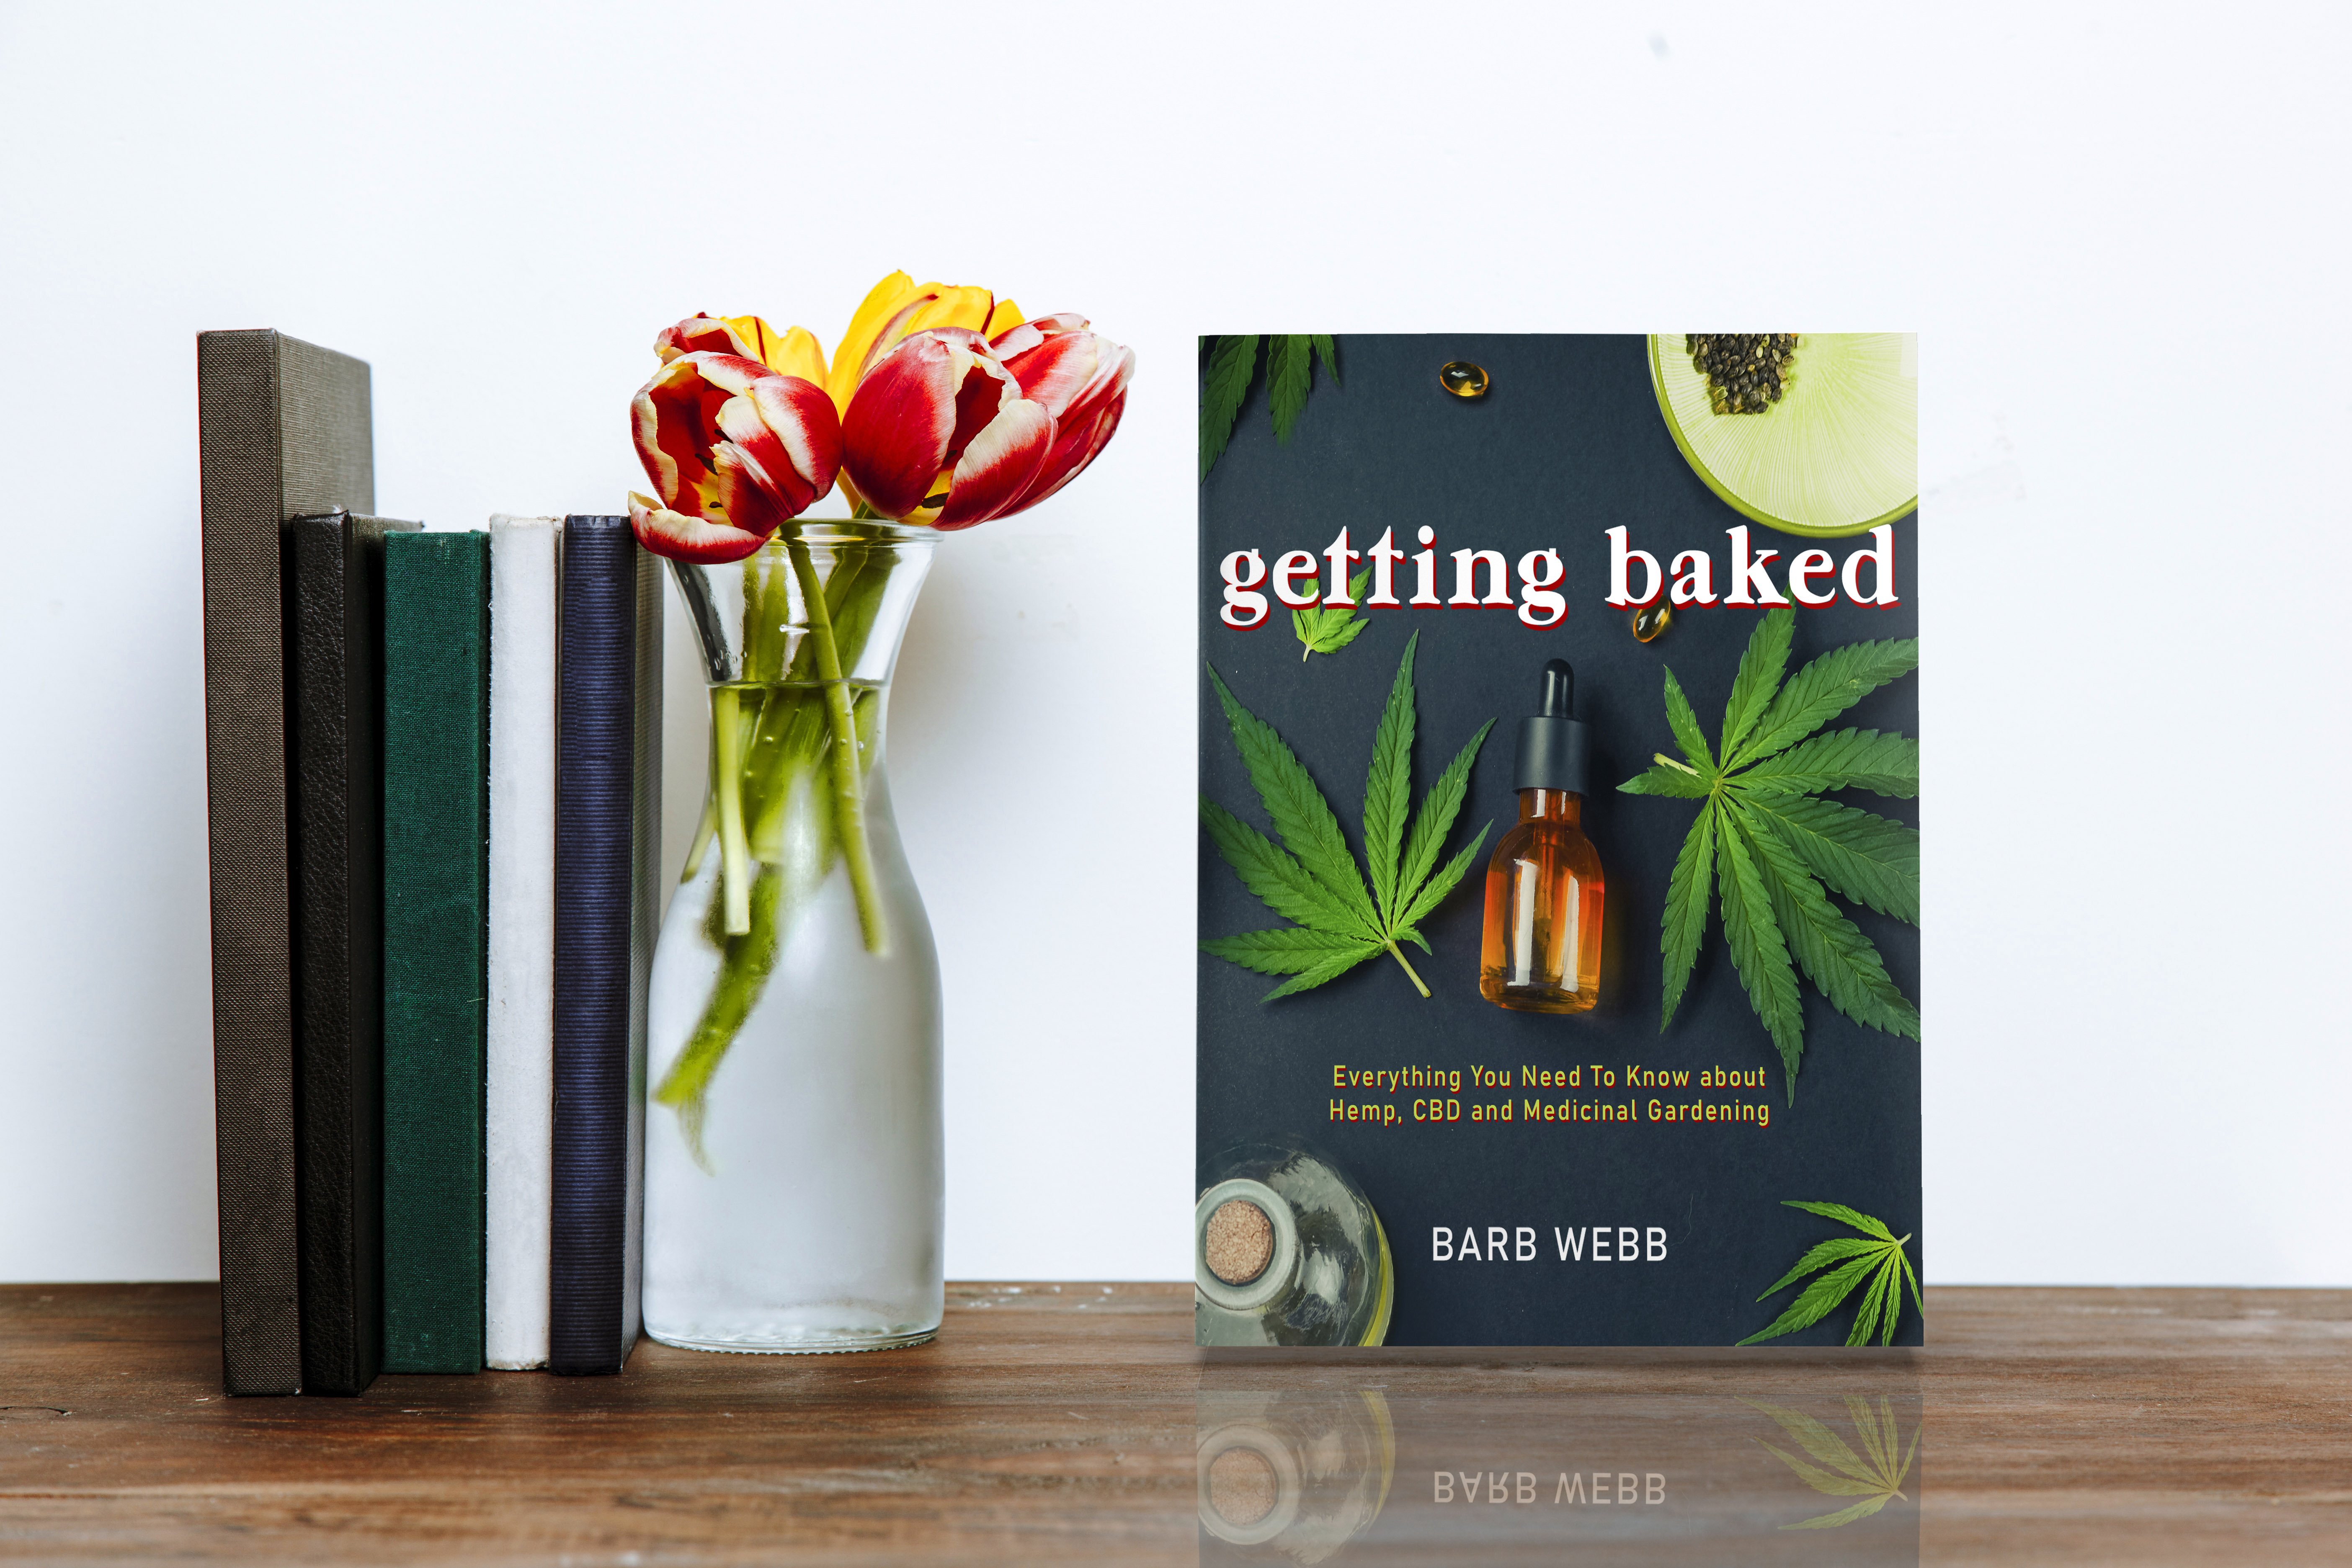 Getting Baked Everything You Need to Know About Hemp, CBD, and Medicinal Gardening